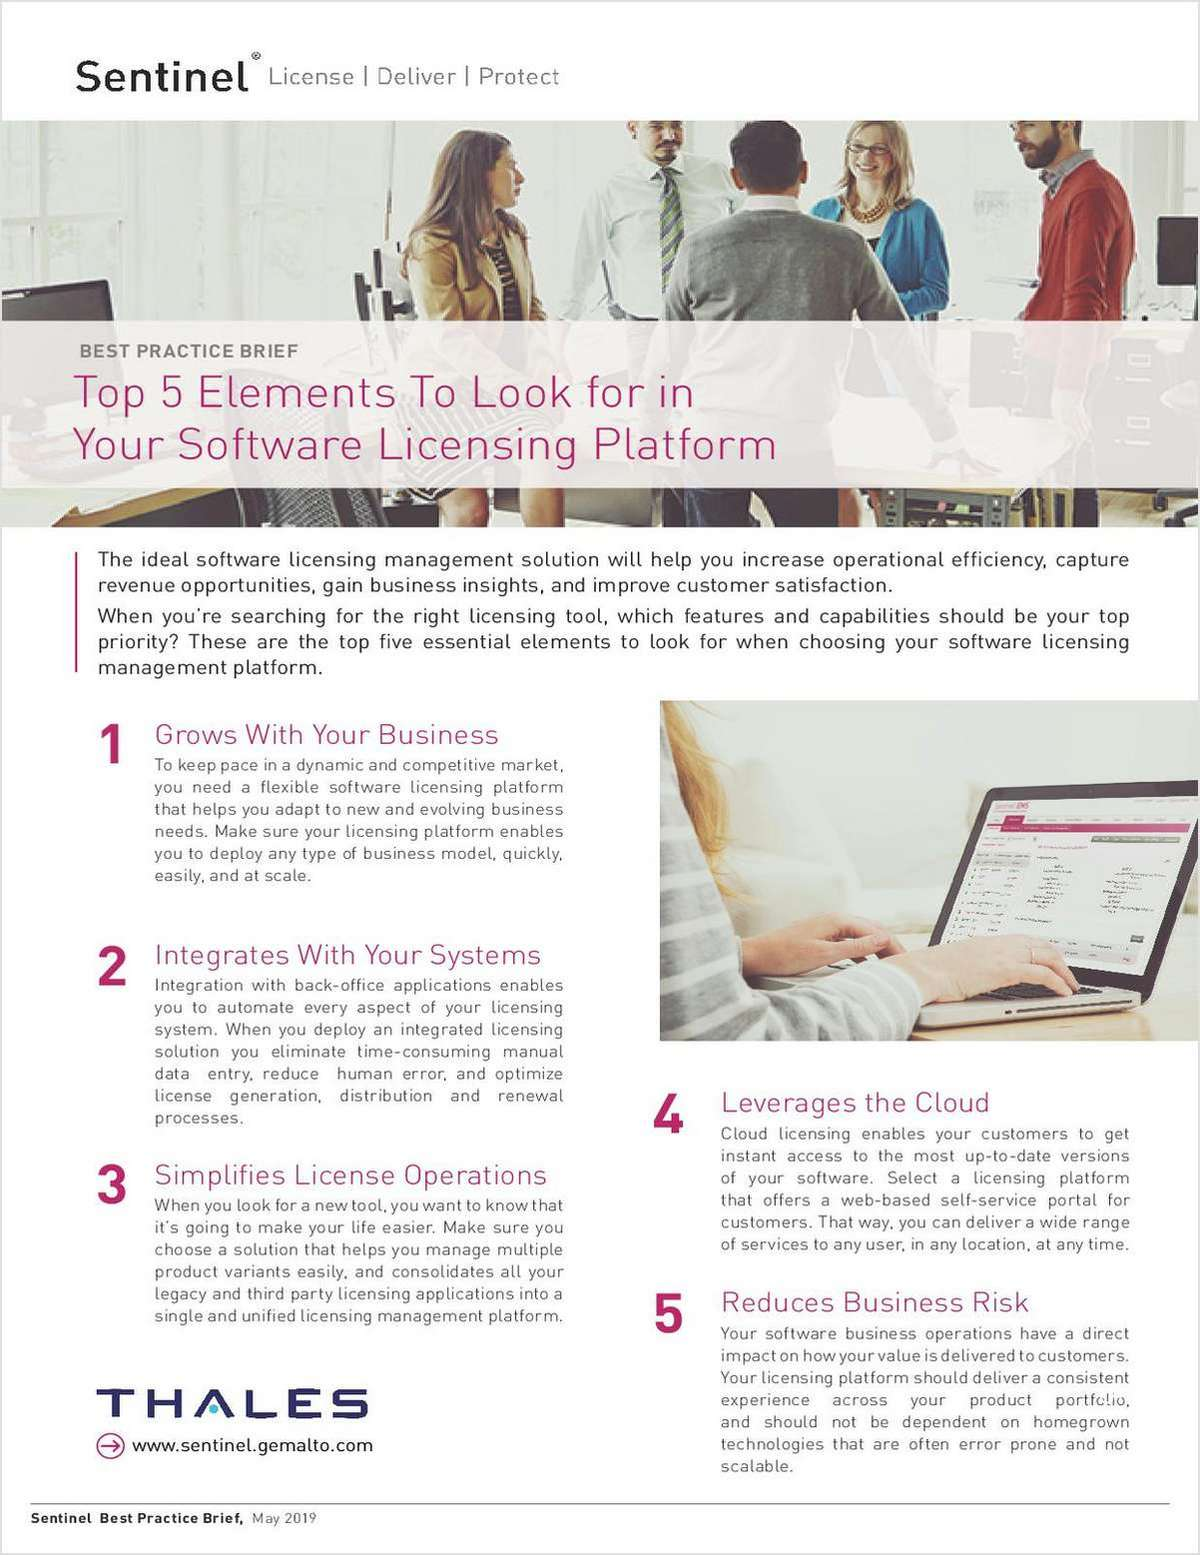 The Top Five Elements To Look for in a Software Licensing Platform